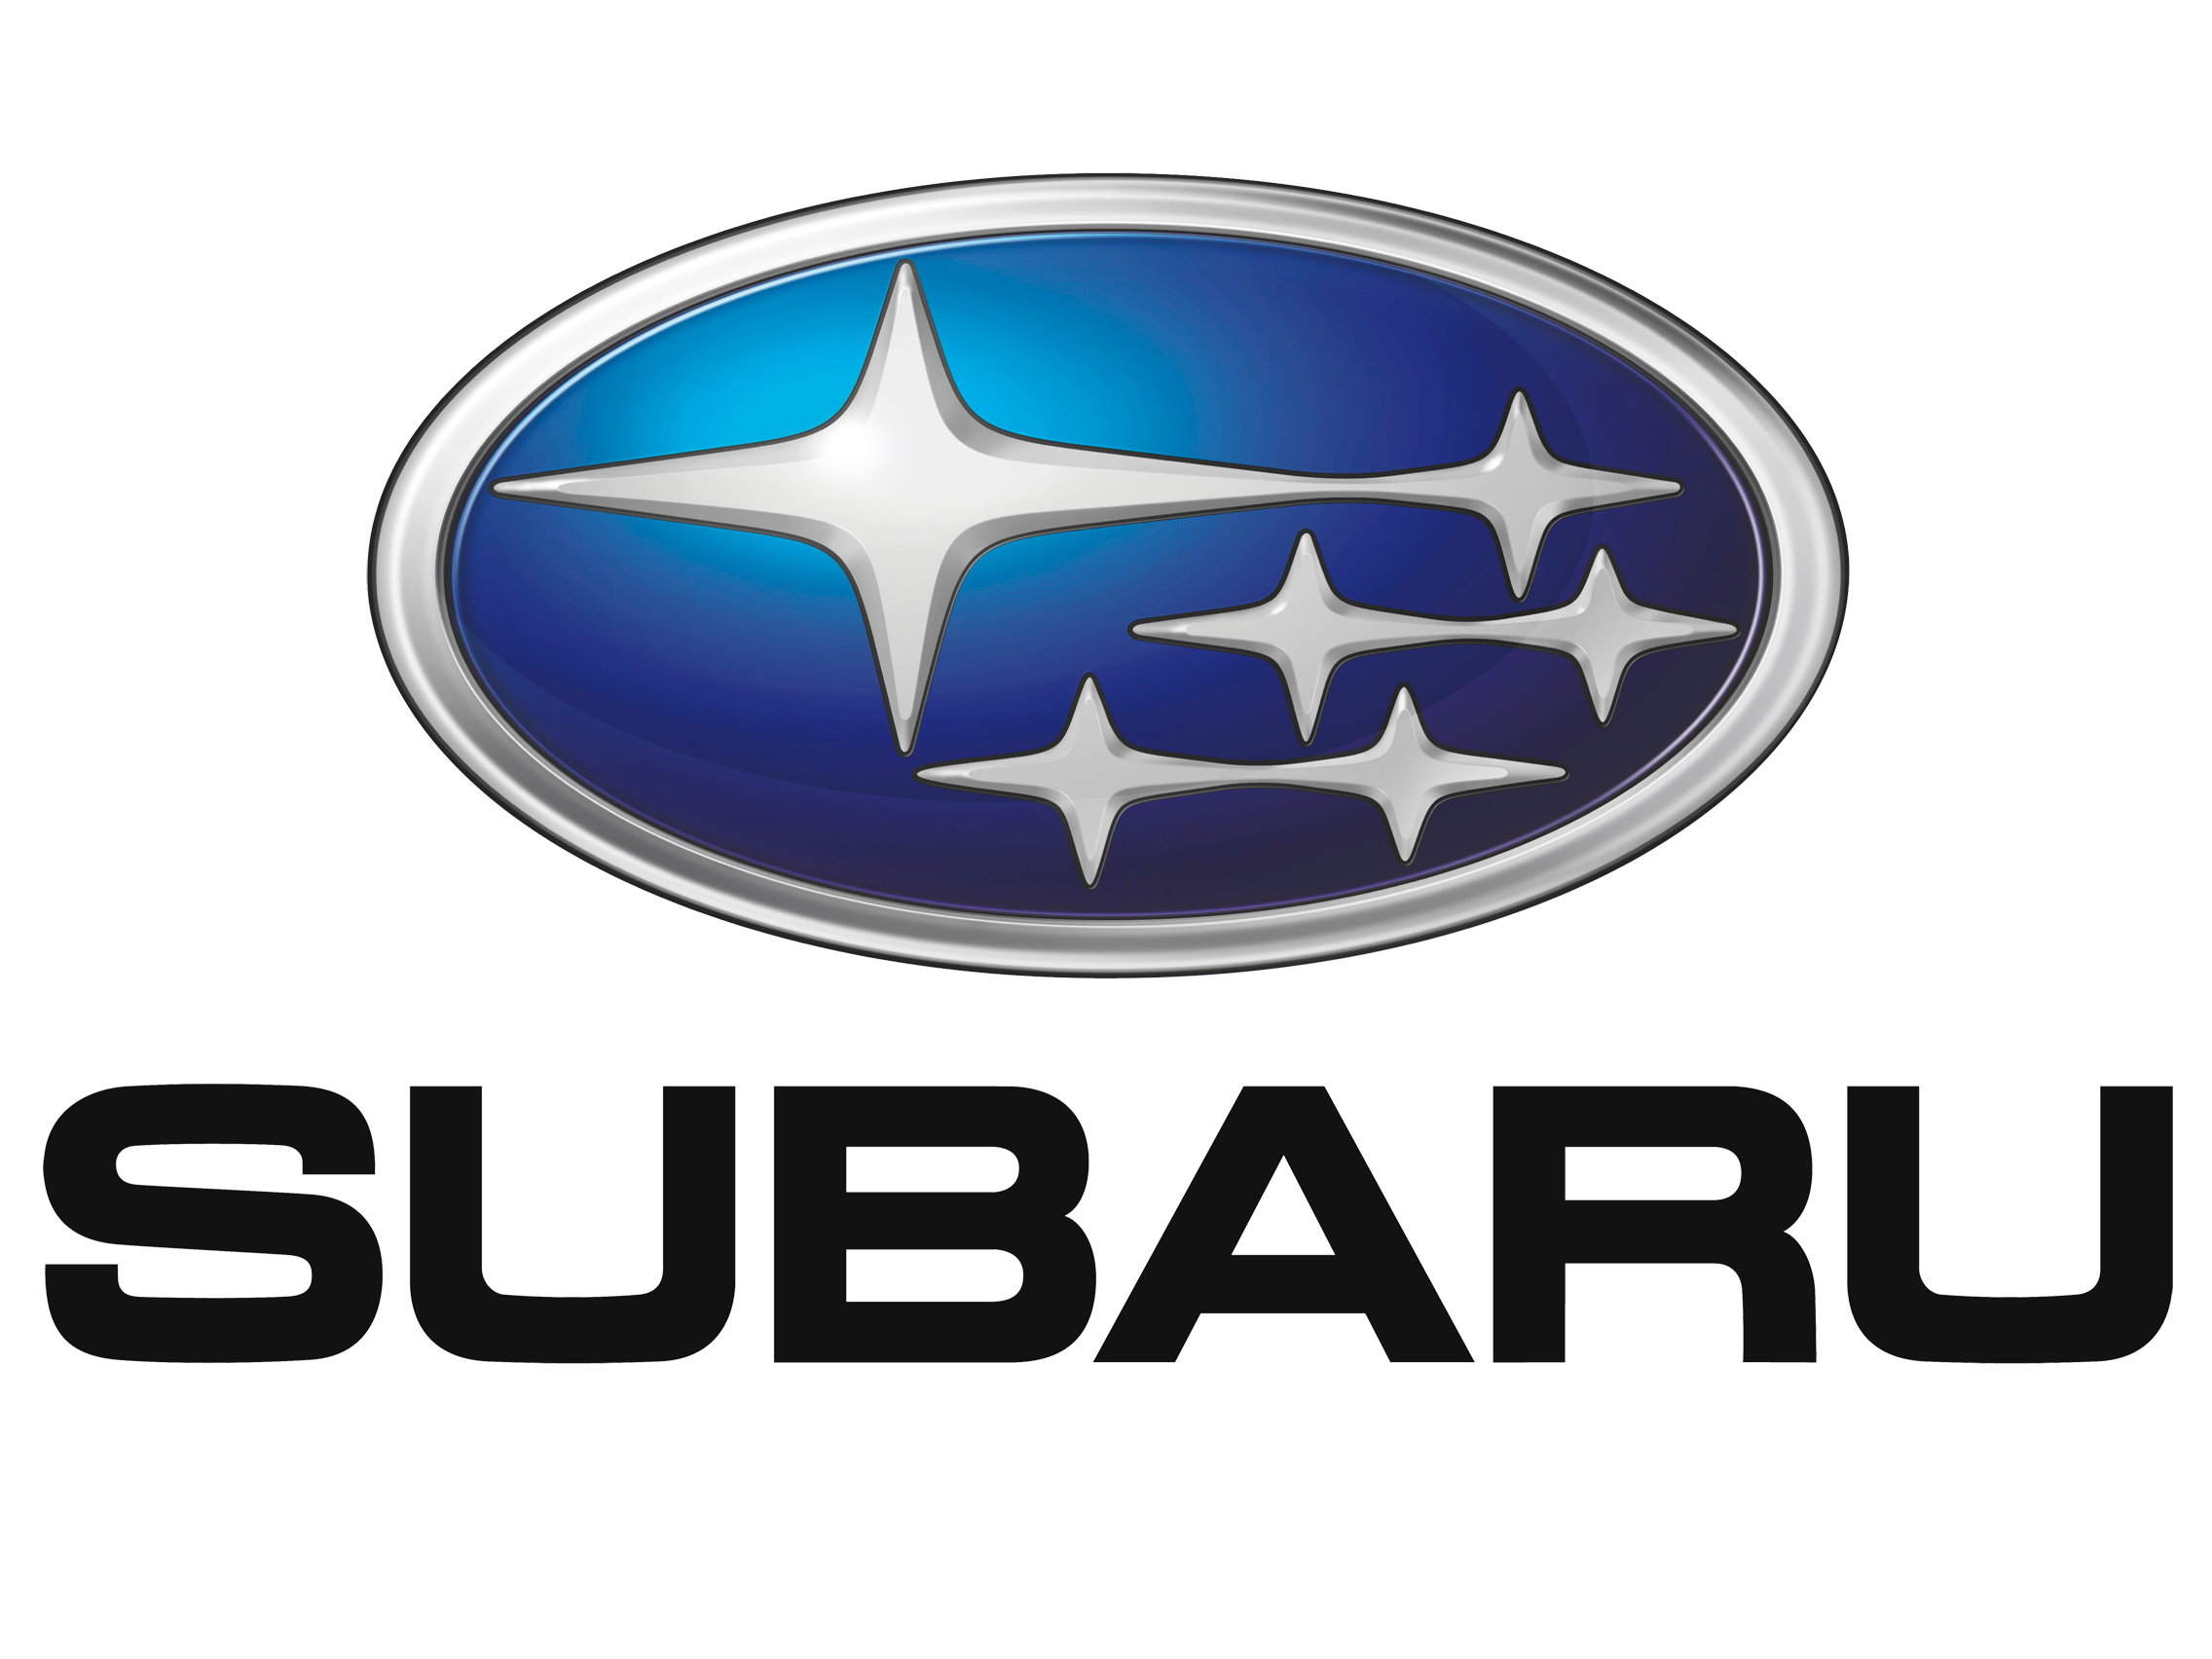 Subaru Share the Love Event Kicks off at Lester Glenn! - Subaru HD PNG